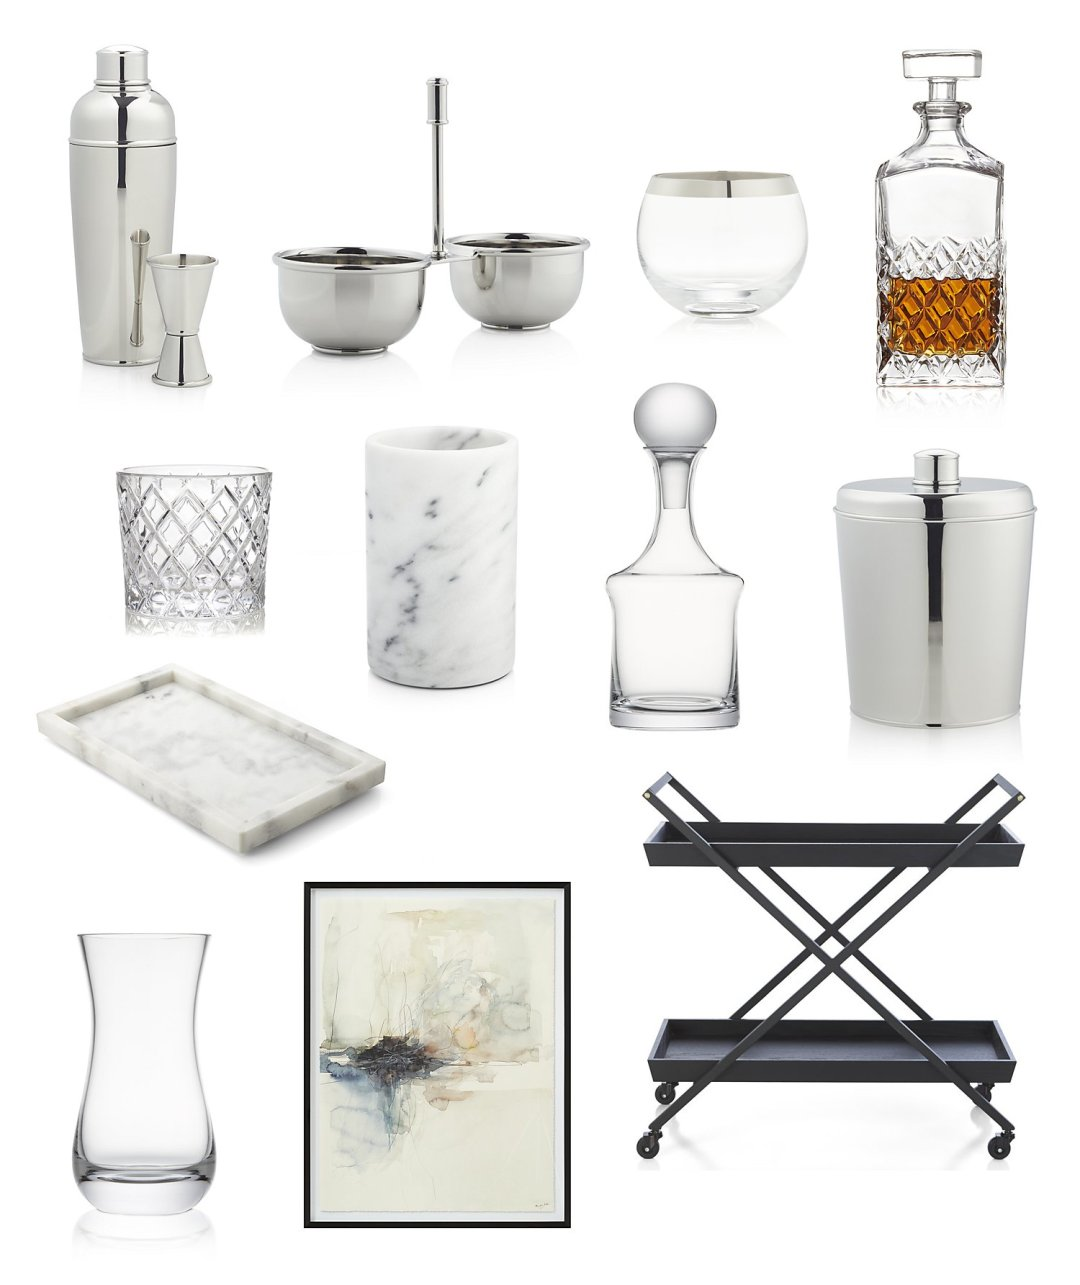 Collage of essential home barcart accessories, glasses and serveware